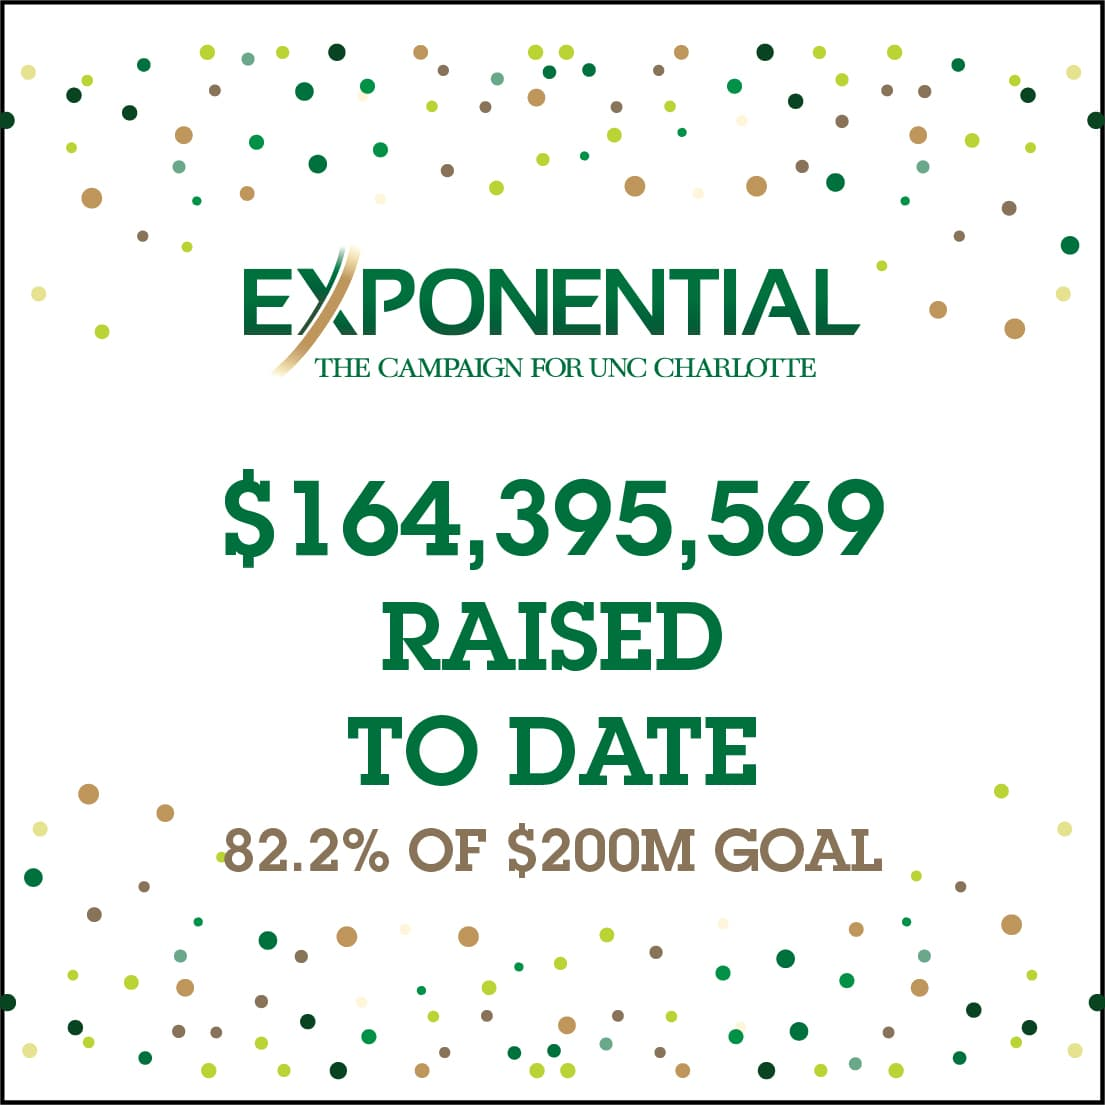 Exponential: $164,395,569 raised to date - 82.2% of $200M goal